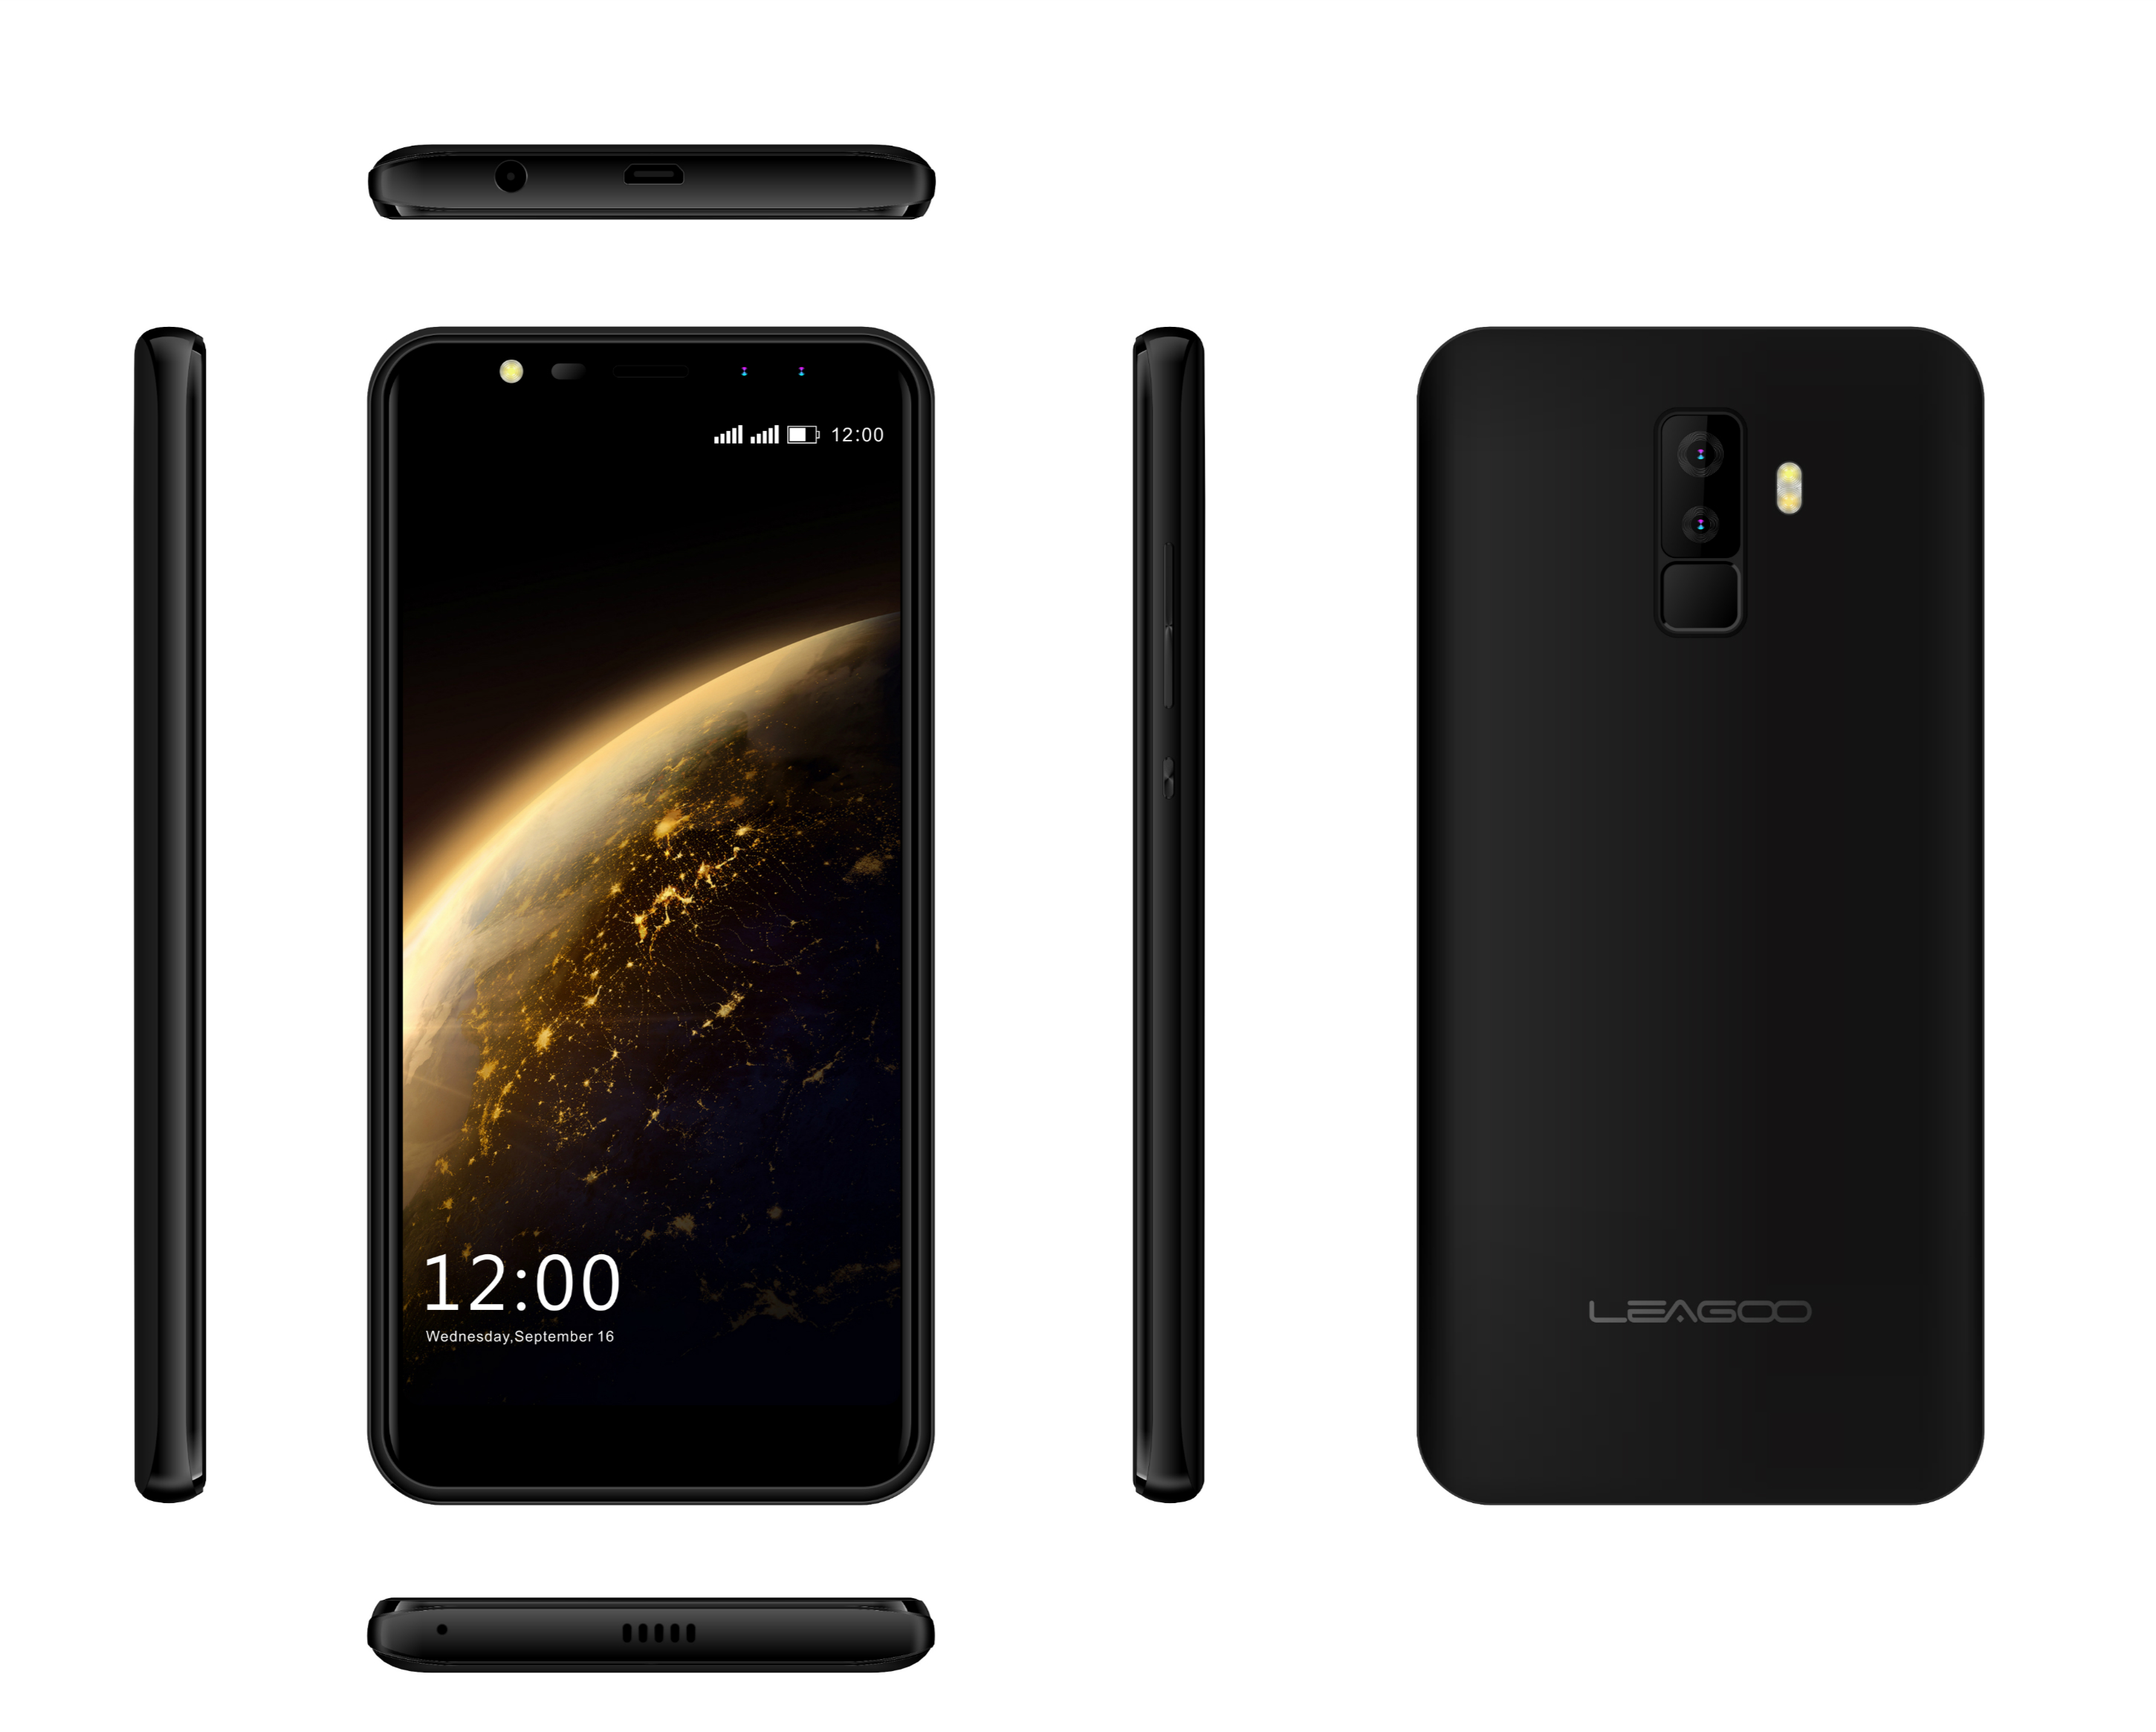 Leagoo M9 5.5 Inch 16GB Smart Phone